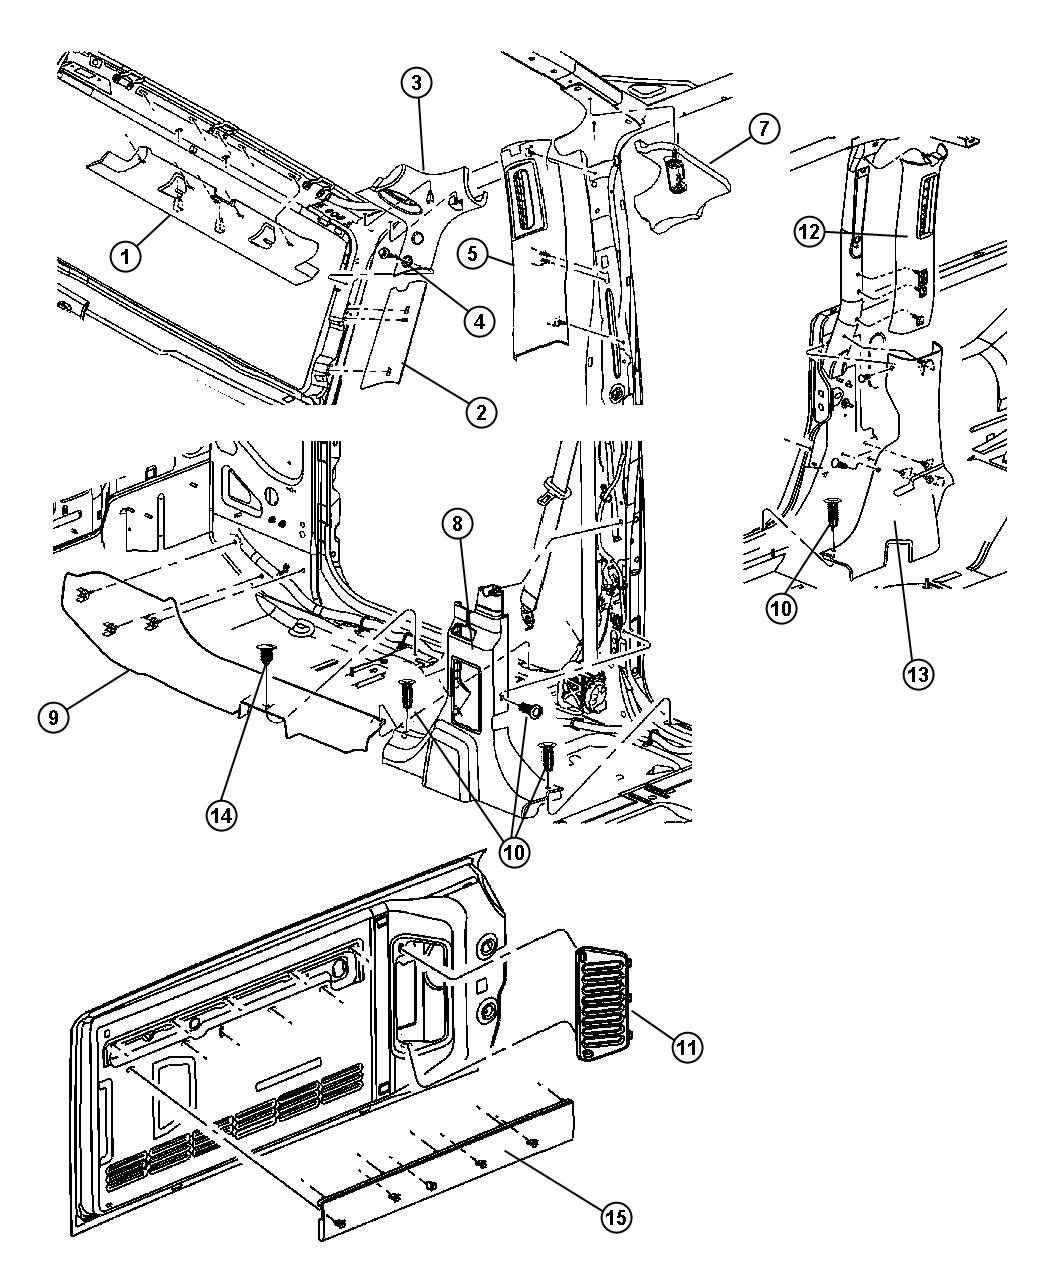 Jeep Wrangler Cover. Right. Wiring protector. Left hand